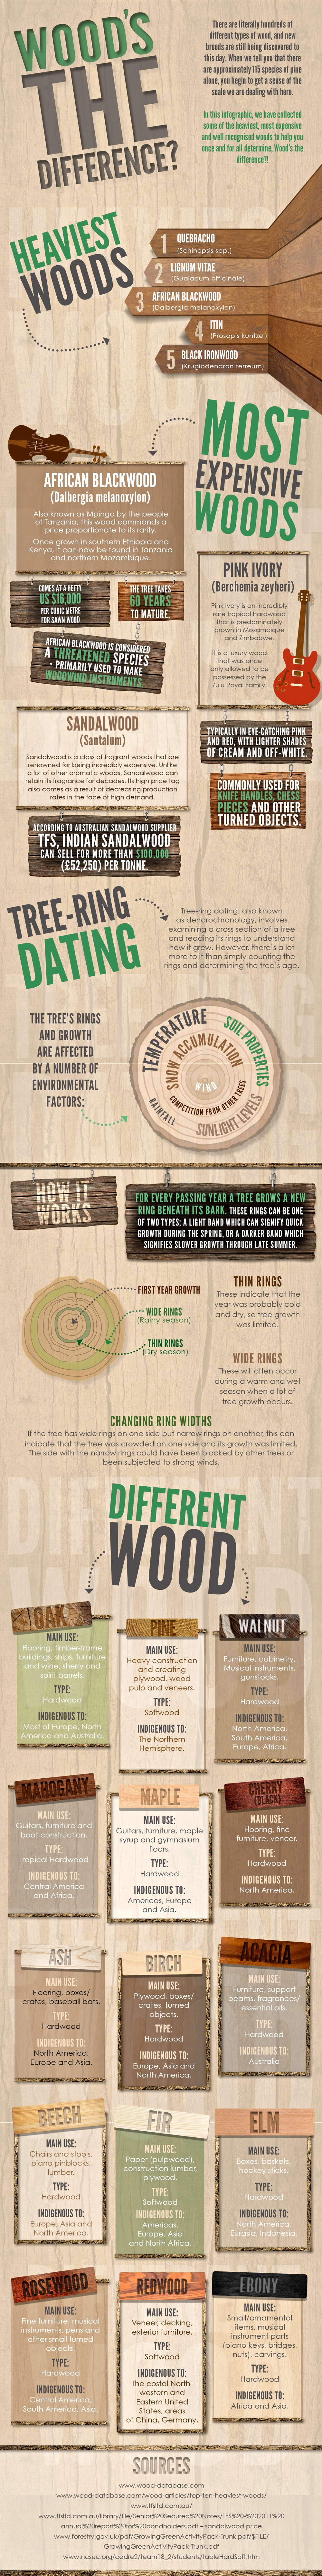 Infographic - Wood's the Difference?